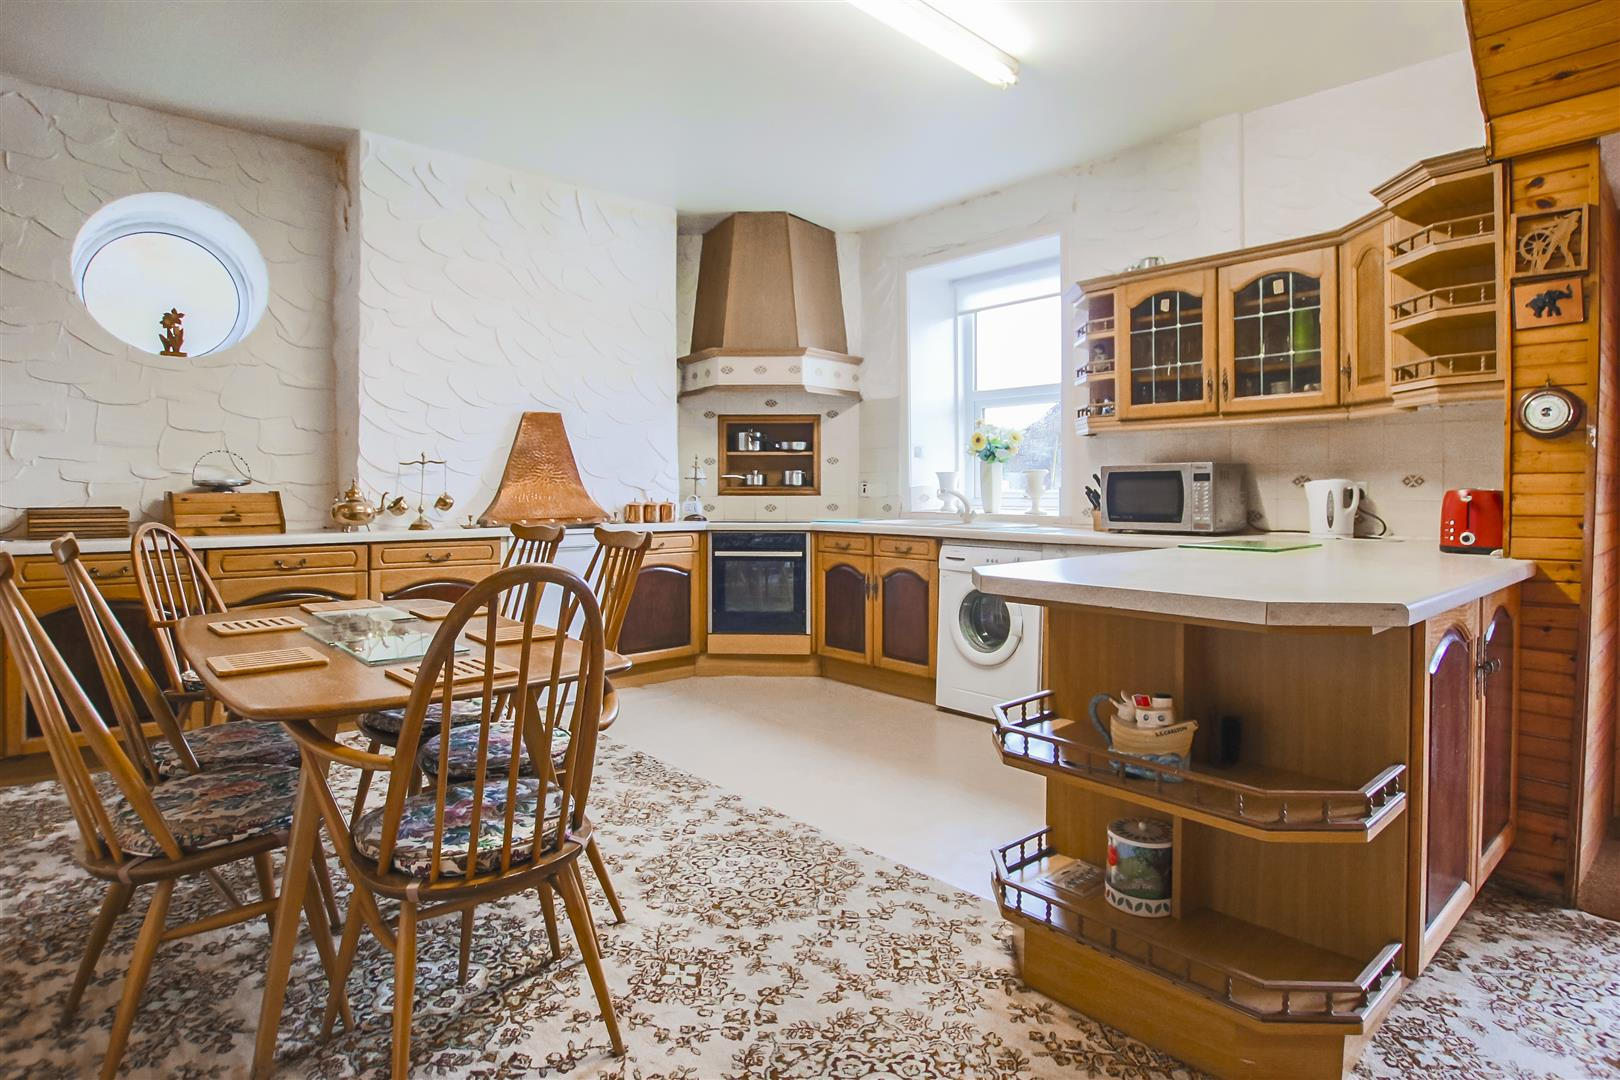 4 Bedroom House For Sale - Main Image